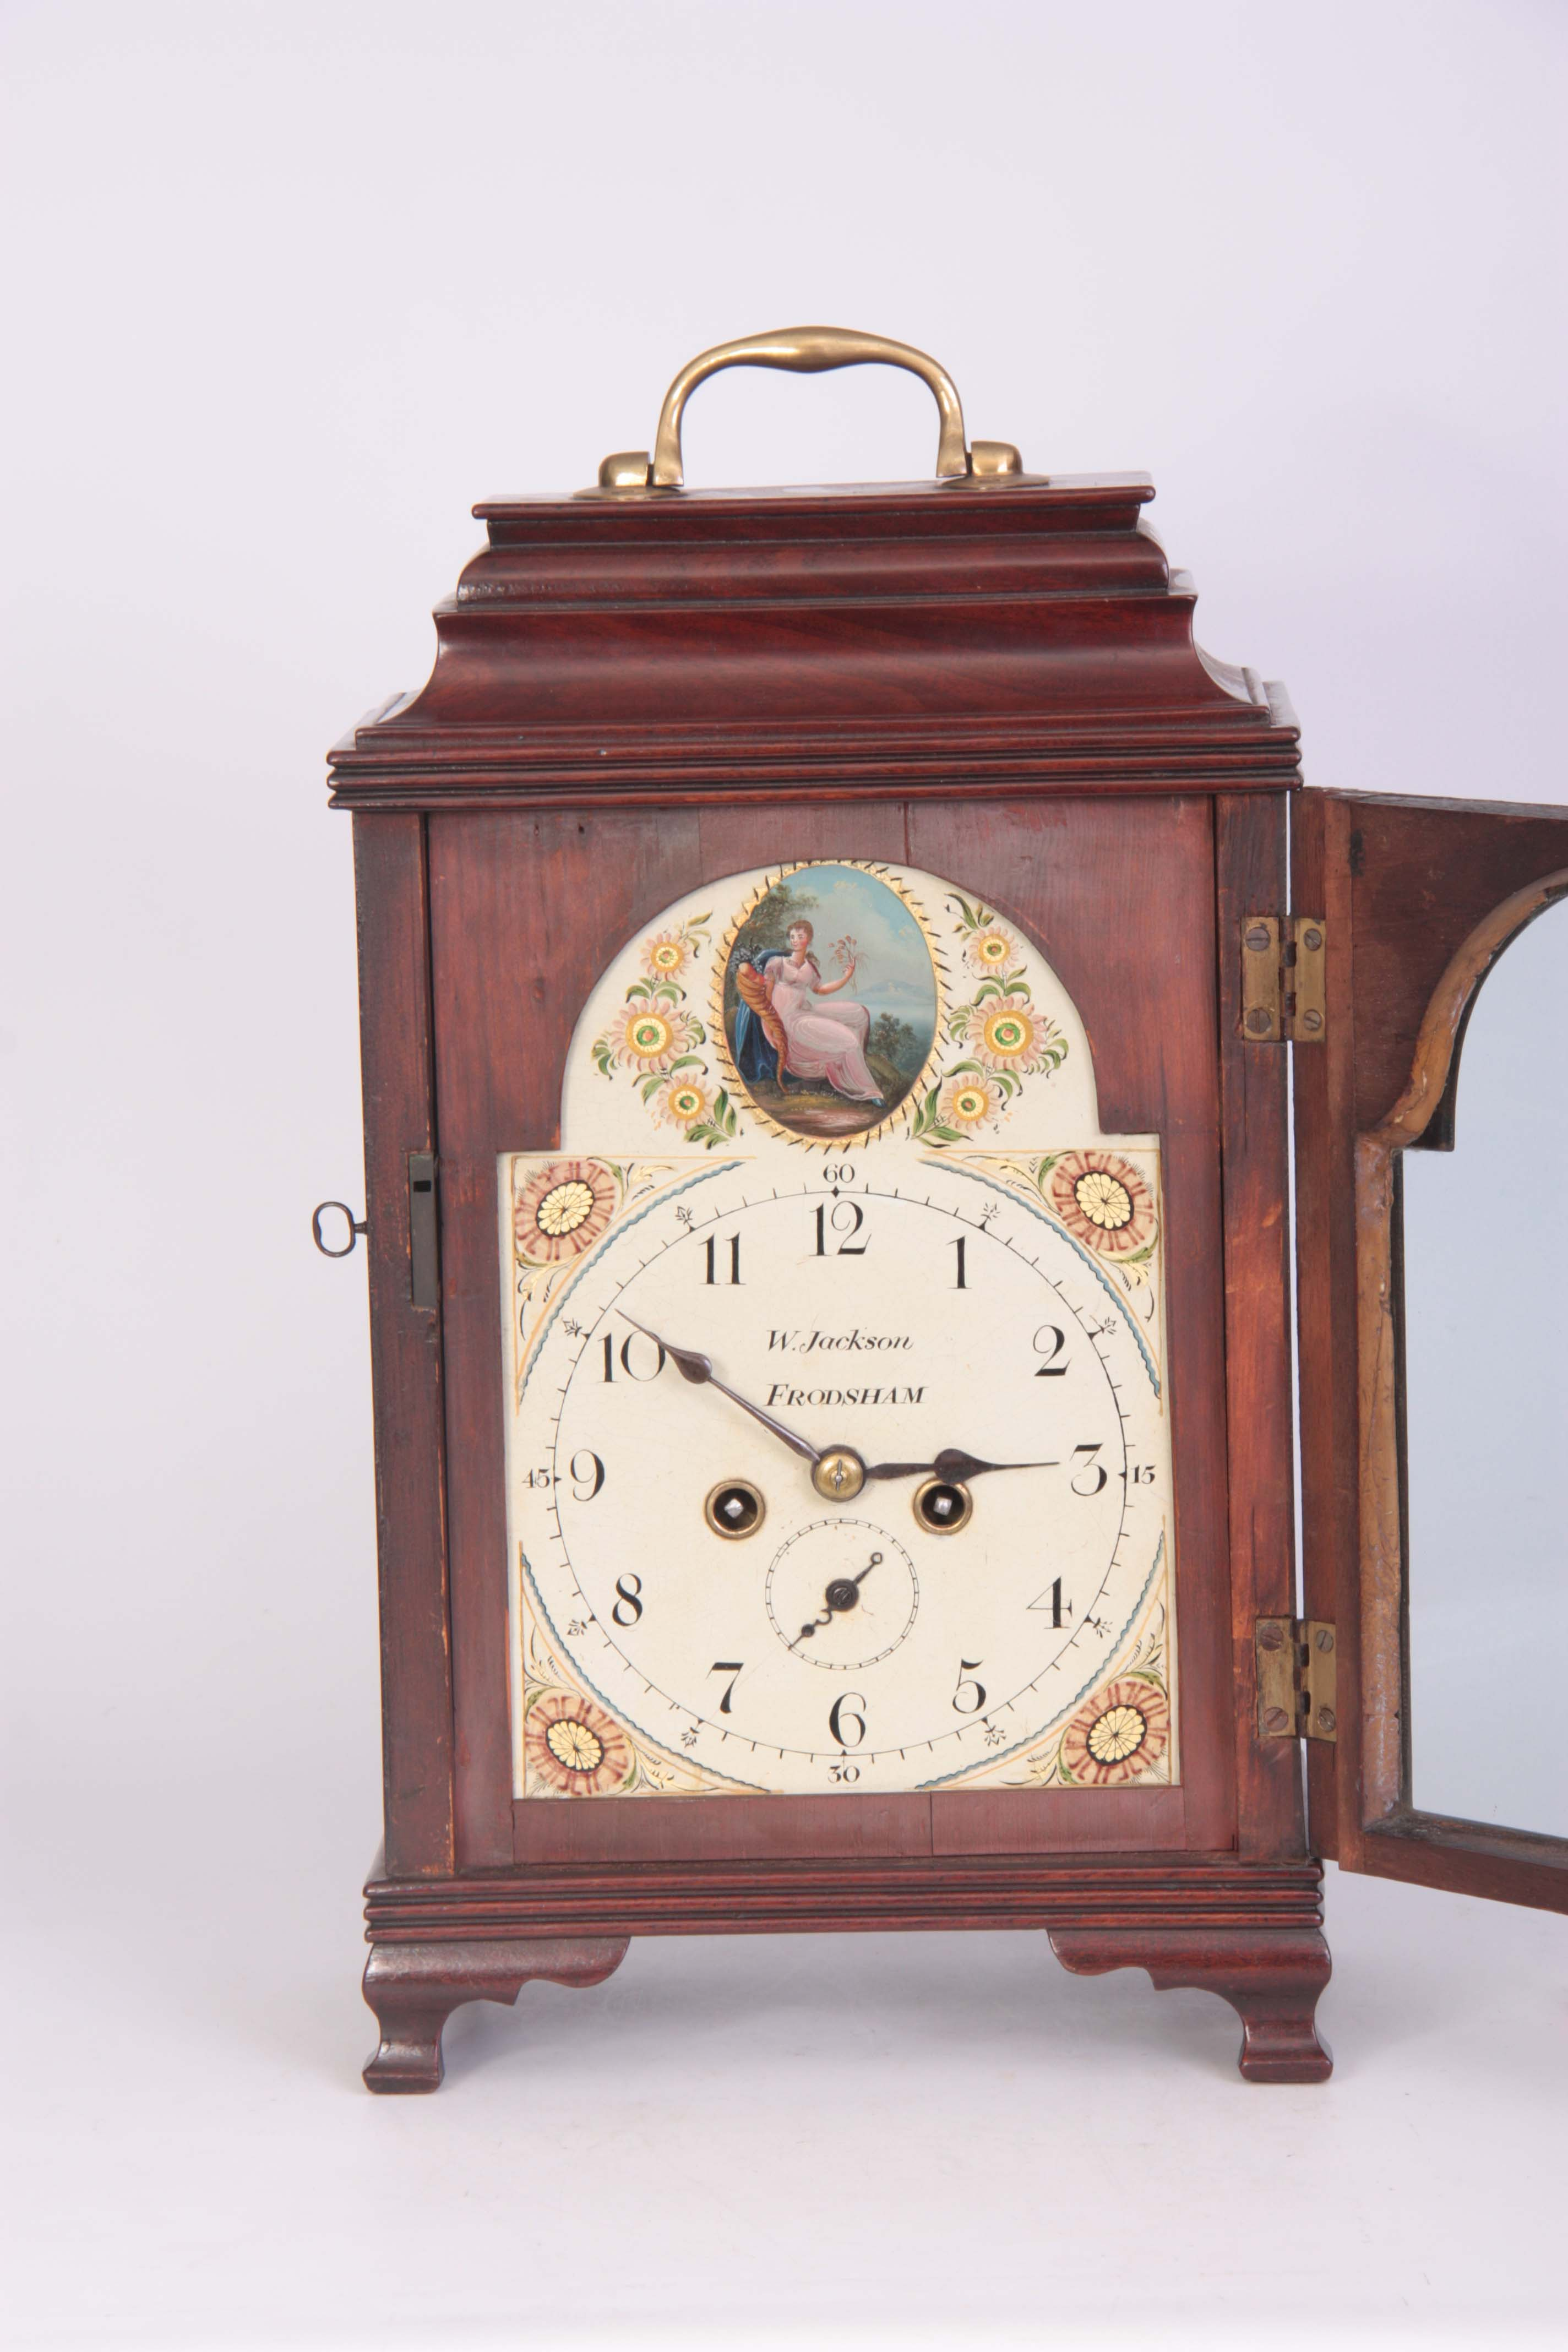 WILLIAM JACKSON, FRODSHAM A GEORGE III PAINTED DIAL MAHOGANY BRACKET CLOCK the case with moulded - Image 3 of 7